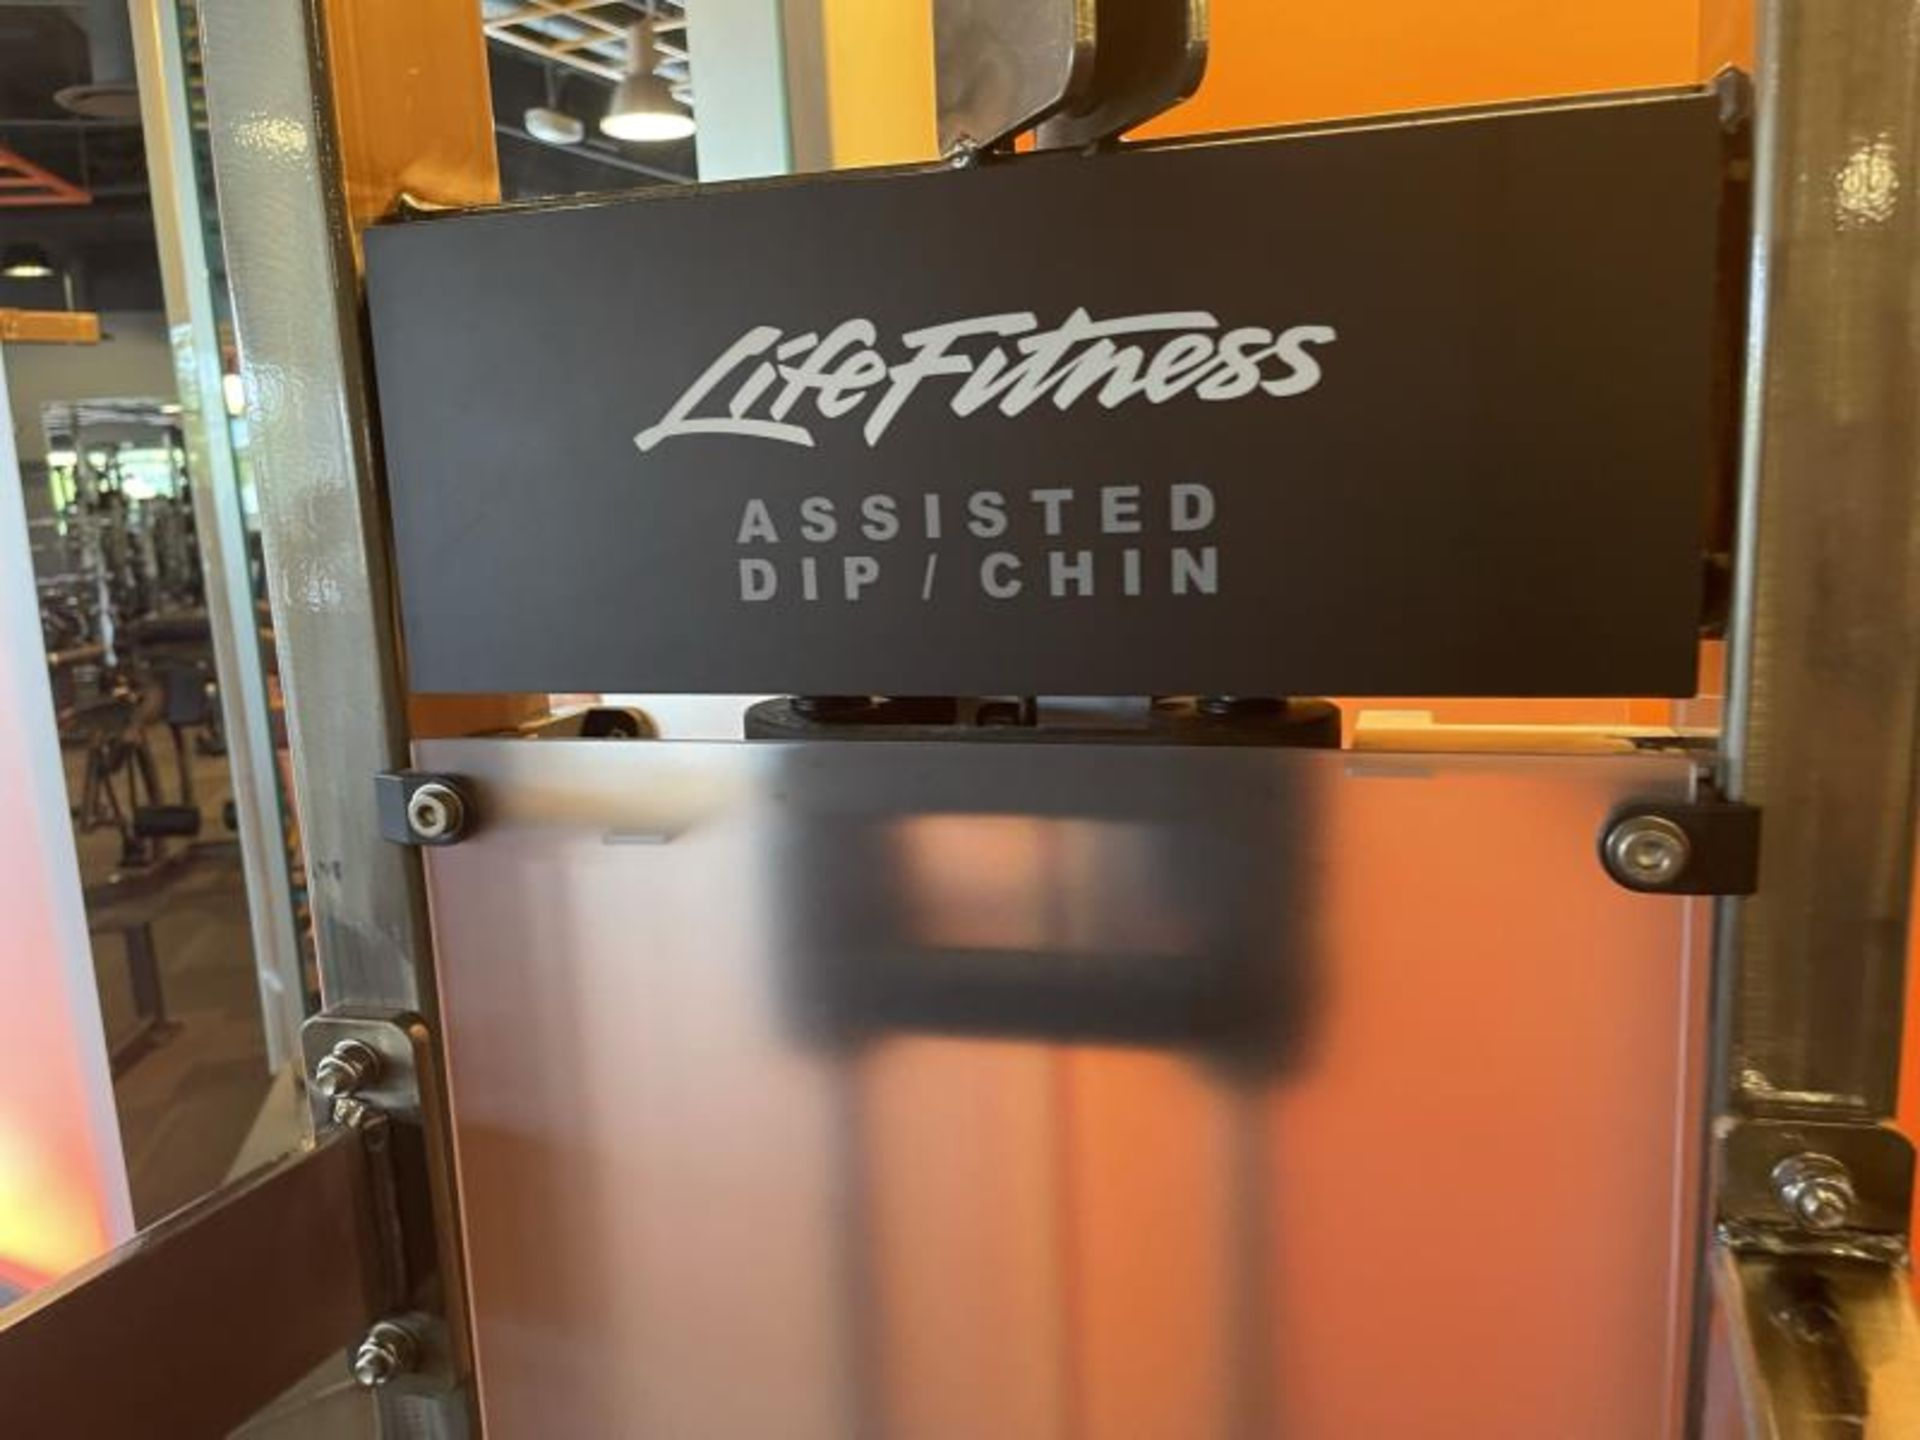 Life Fitness Assisted Dip/Chip M: PSADCSE - Image 5 of 5